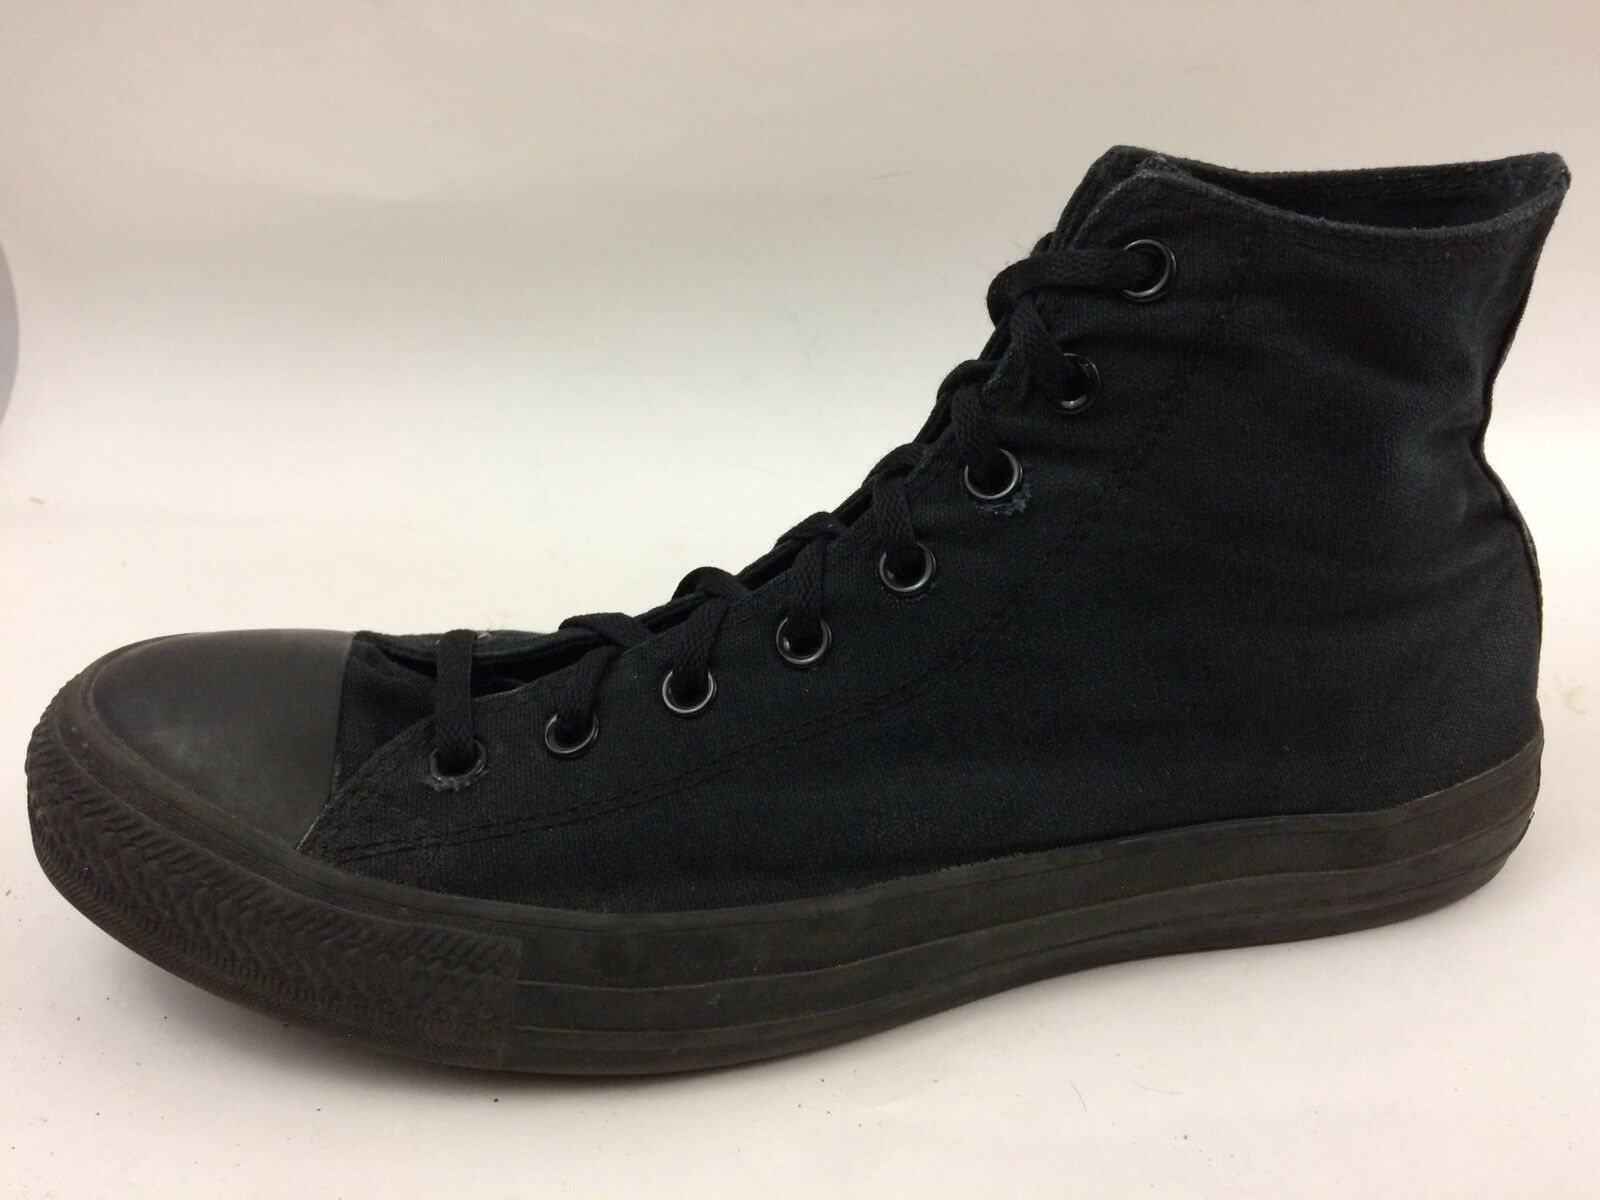 Converse Chuck Taylor All Star Mens 12 Med High Top Black on Black Sneaker shoes